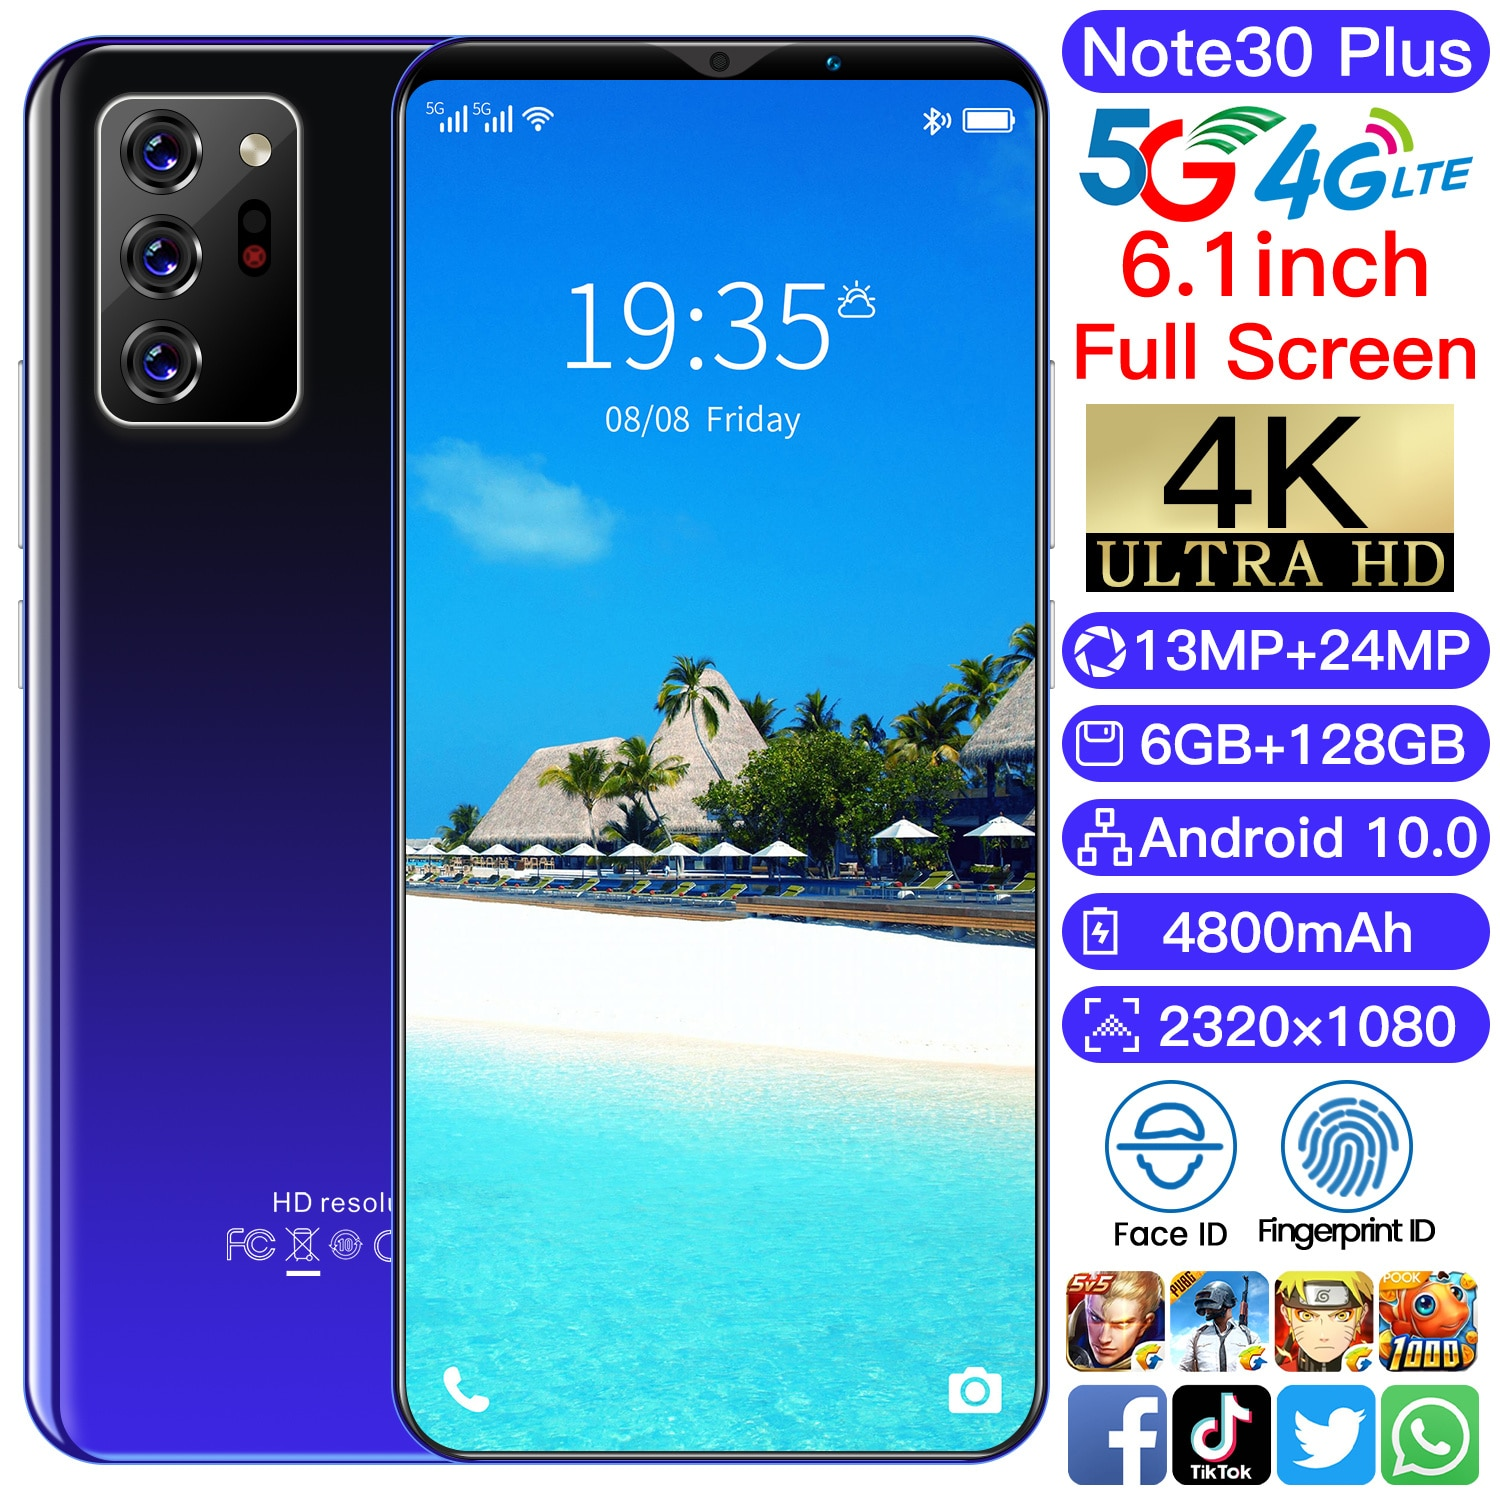 Global Version 6.1 Inch Note30 Plus Android10 Smartphone 6+128GB4800mAh Face Unlock Cellphone Dual SIM 4G LTE 5G Network Phone